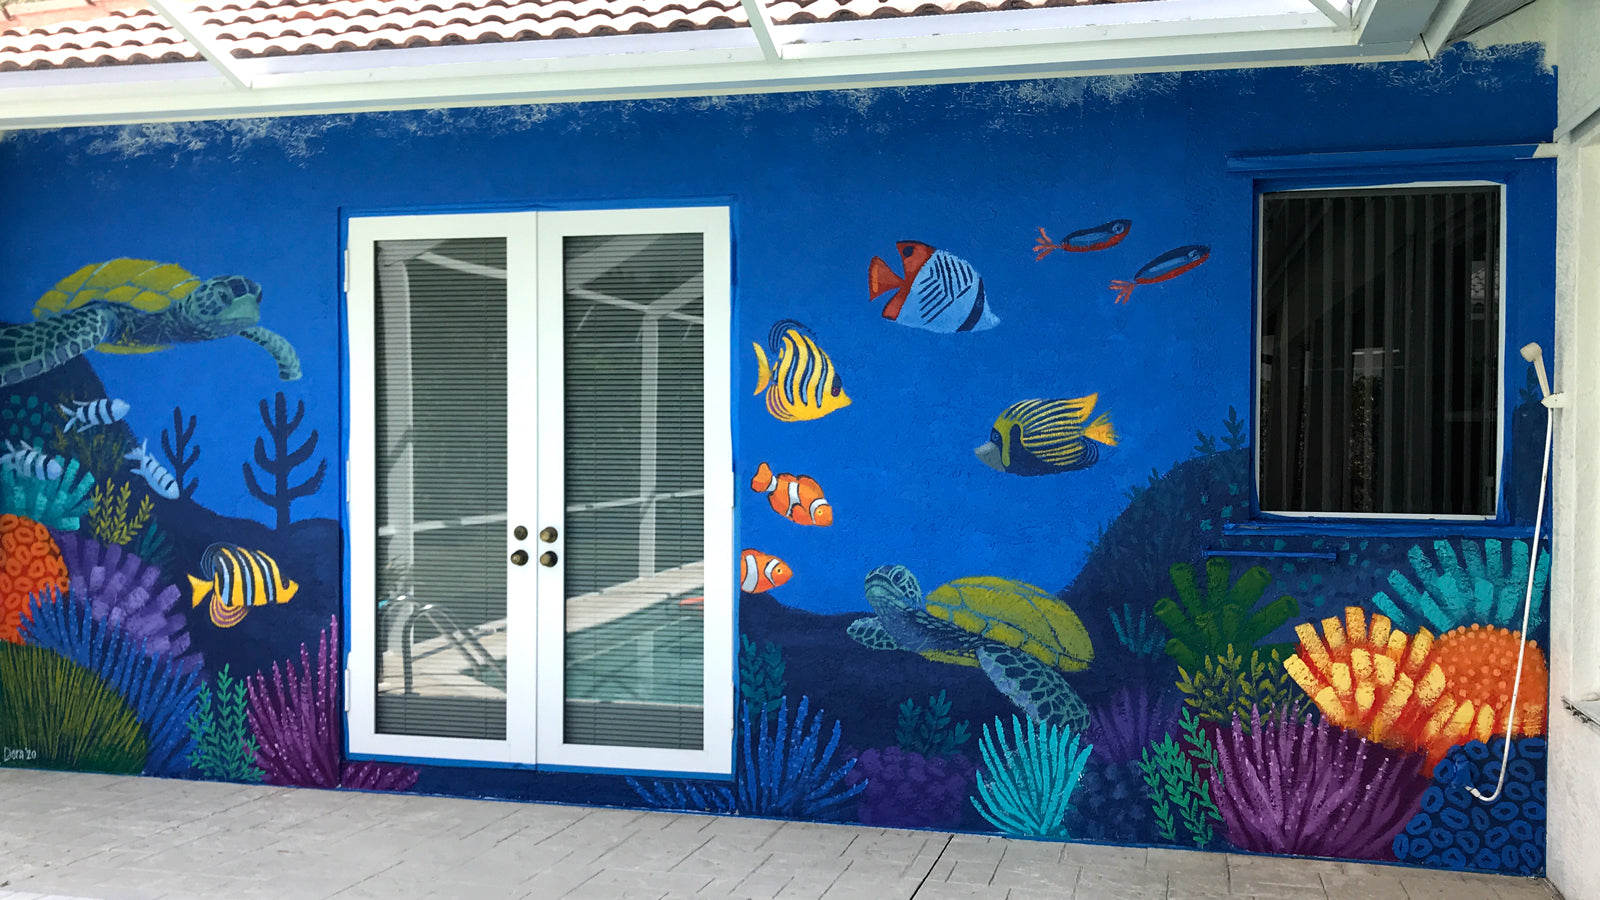 Coral Reef Mural by Dora Knuteson